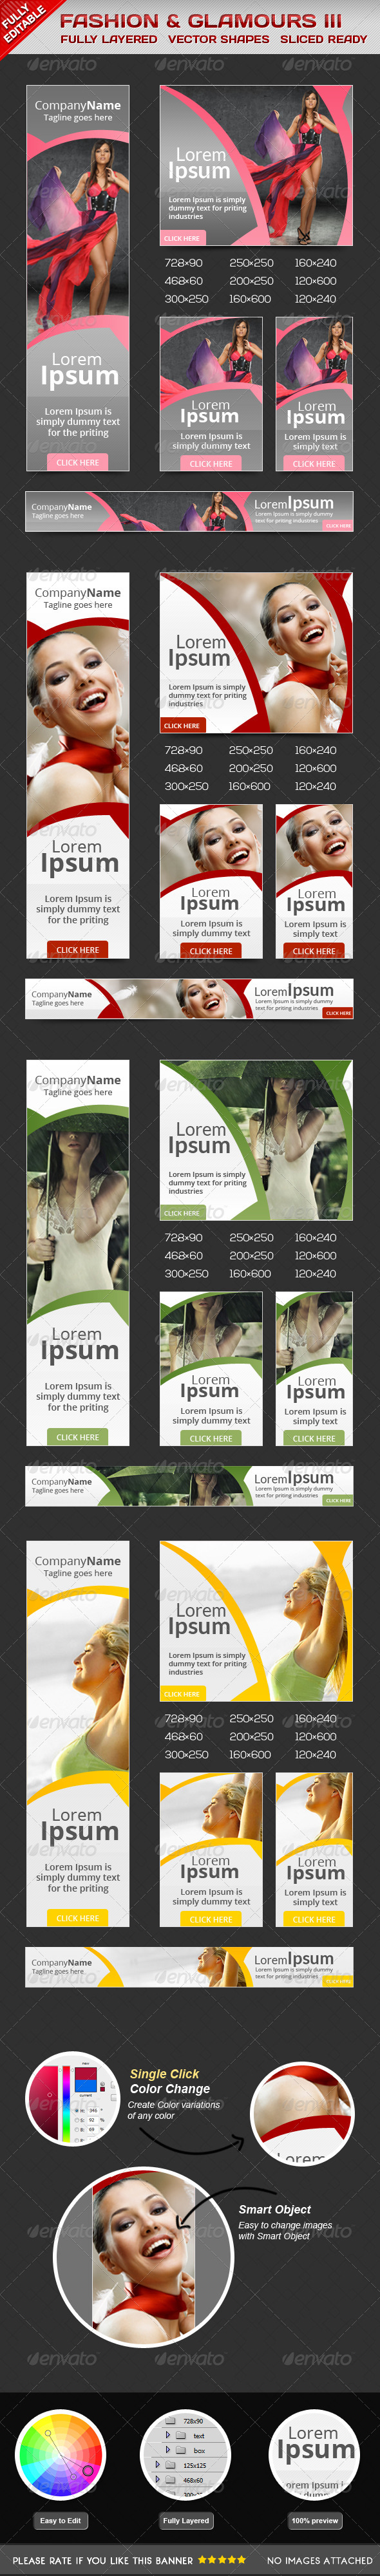 GraphicRiver Fashion Glamorous Banners II 6167470